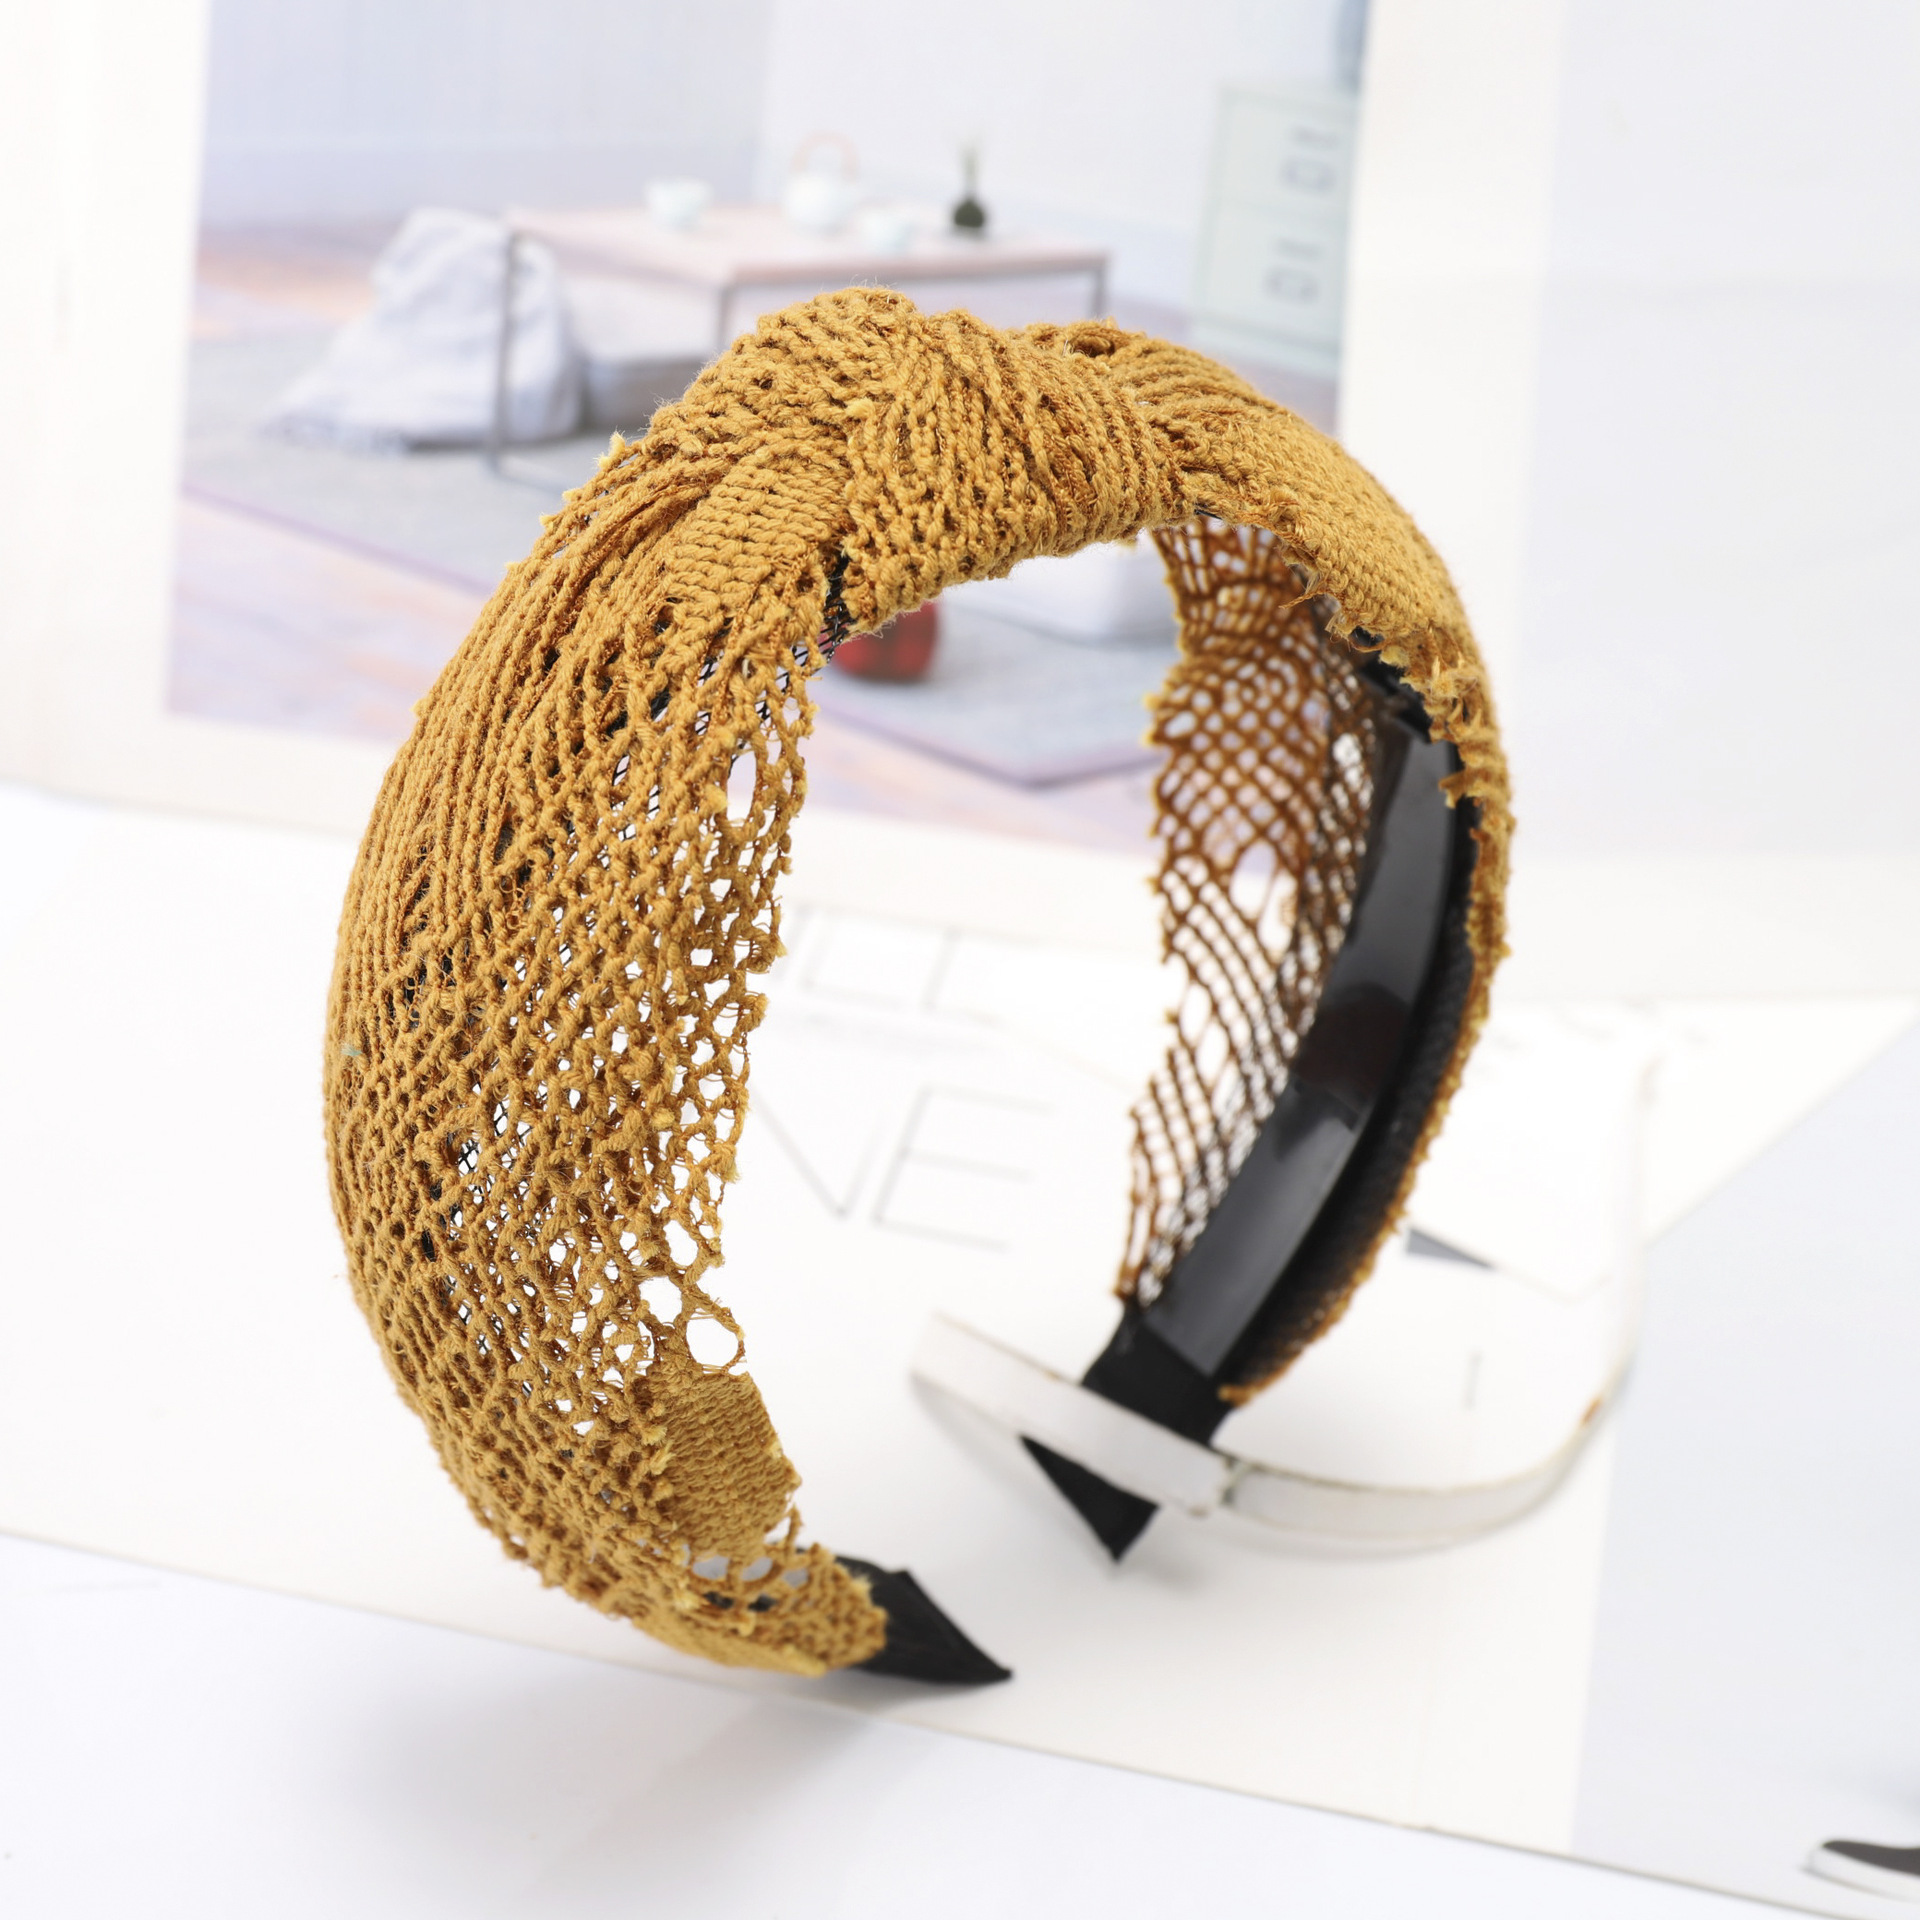 Kpop Lace Hair Accessories Makeup Headband Harajuku Vintage Retro Bow Woman Accessory Fashion Wide Lace Hairband 2019 Headwear in Women 39 s Hair Accessories from Apparel Accessories